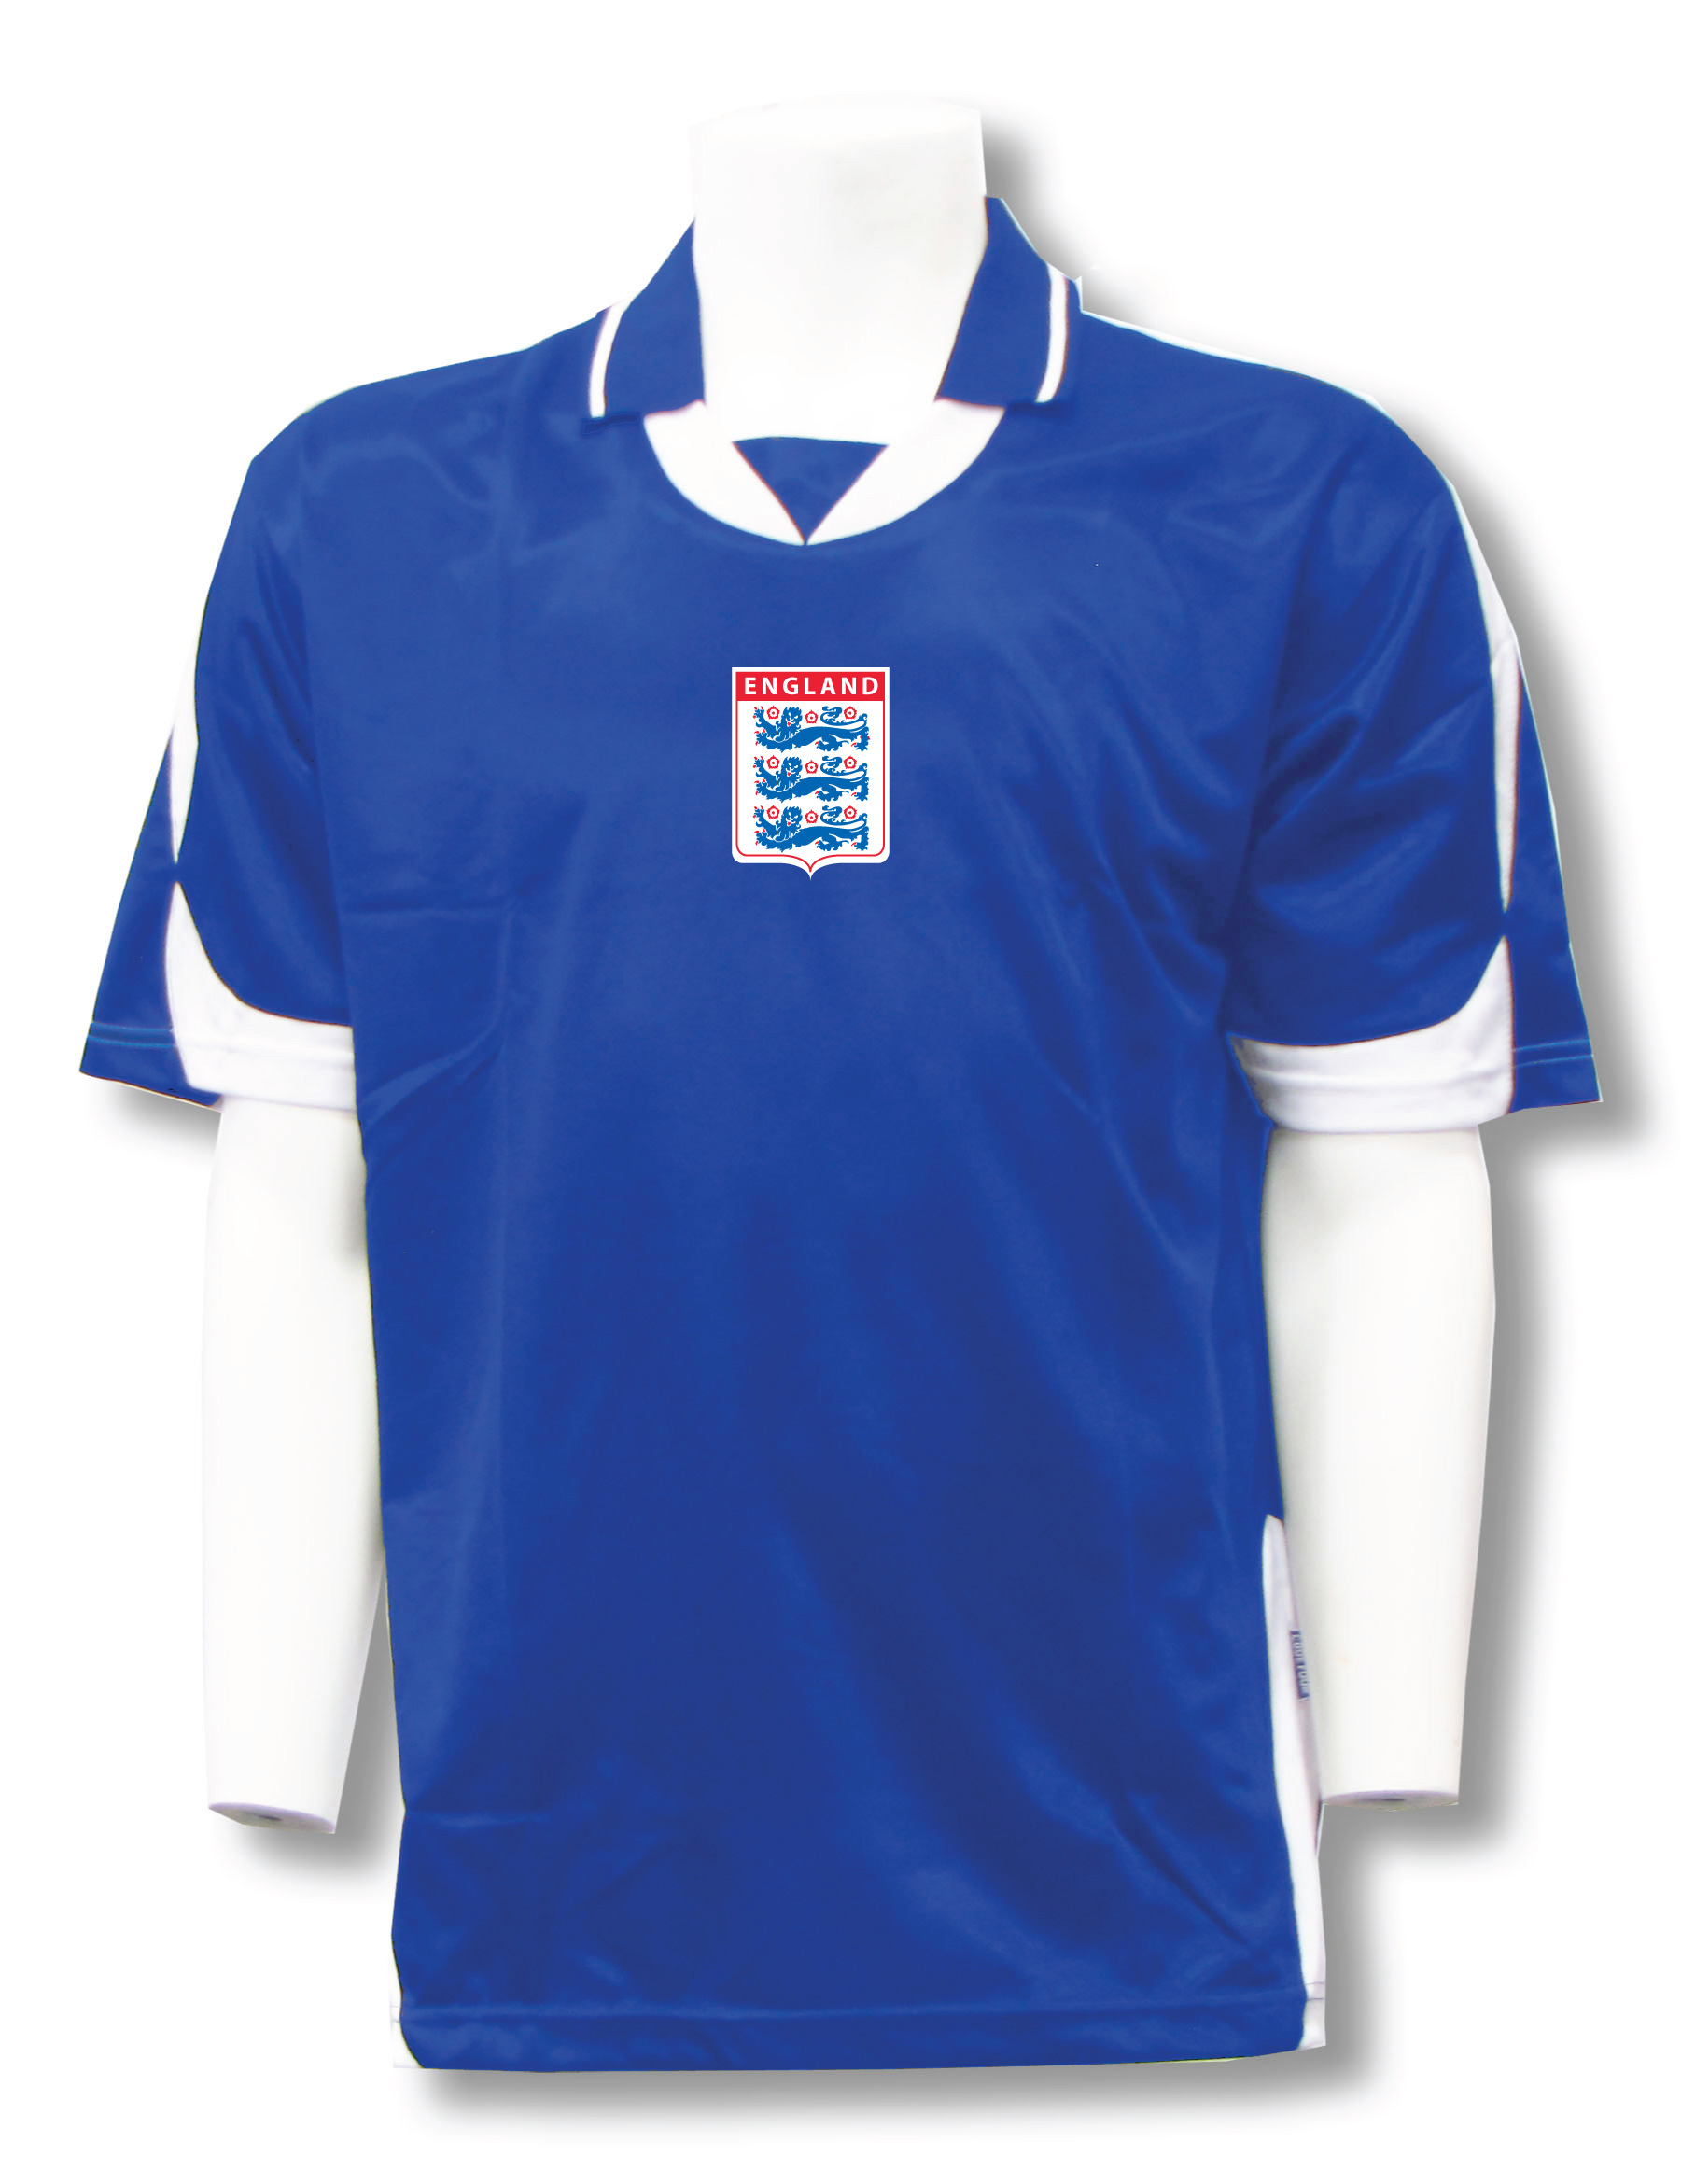 England soccer jersey in royal/white